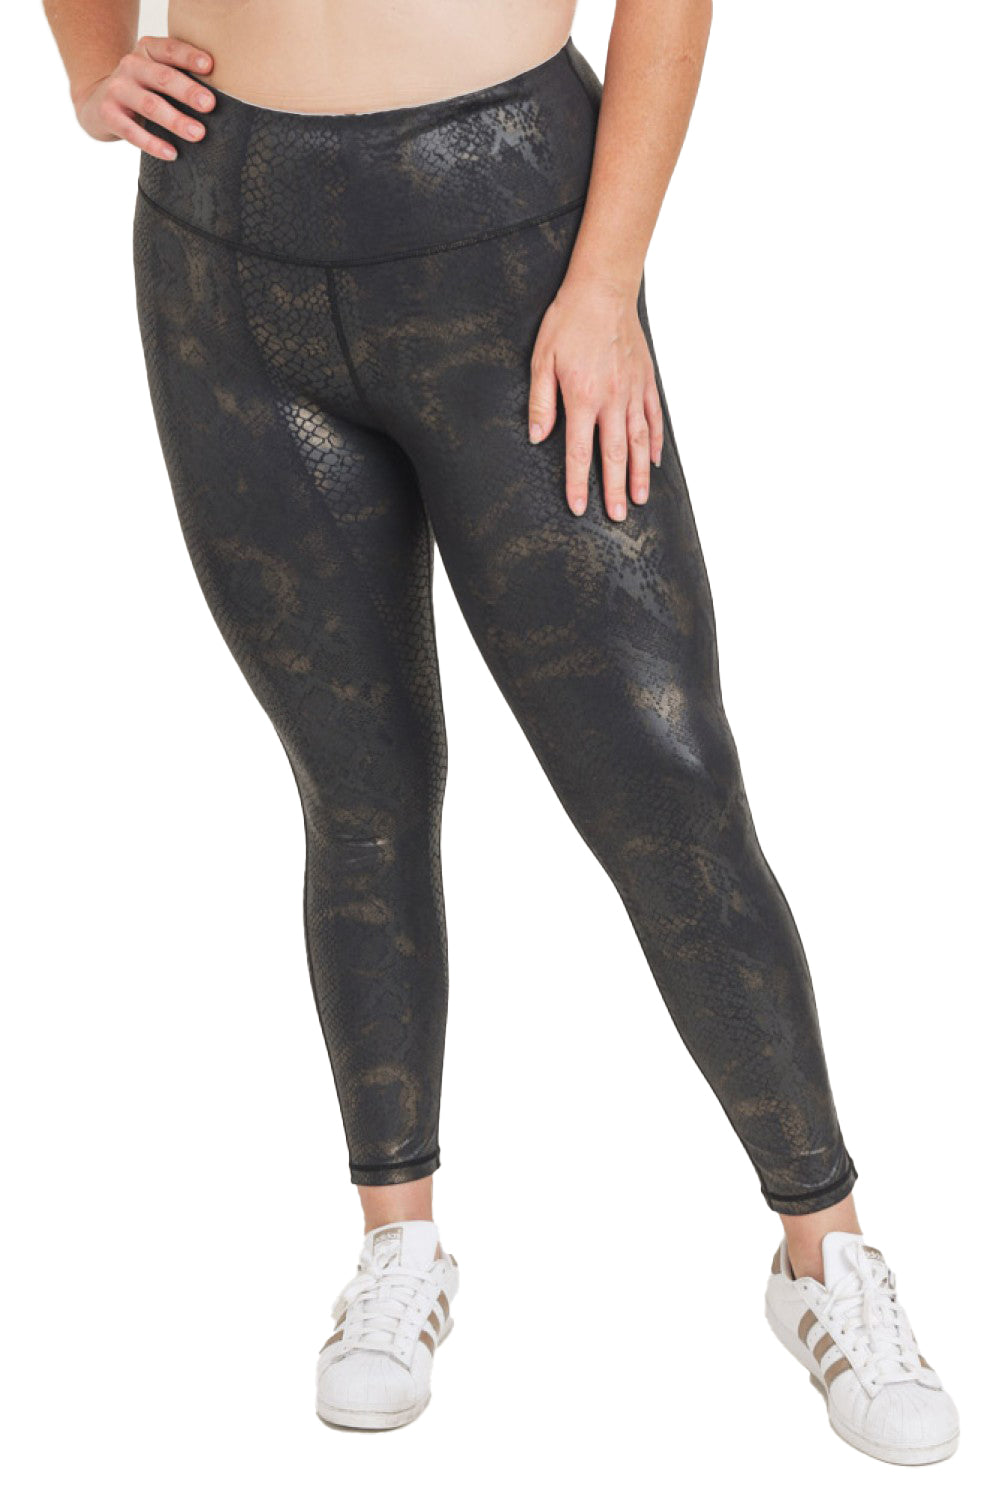 "Gold/Black Snake Foil High-Rise 28"" Legging"